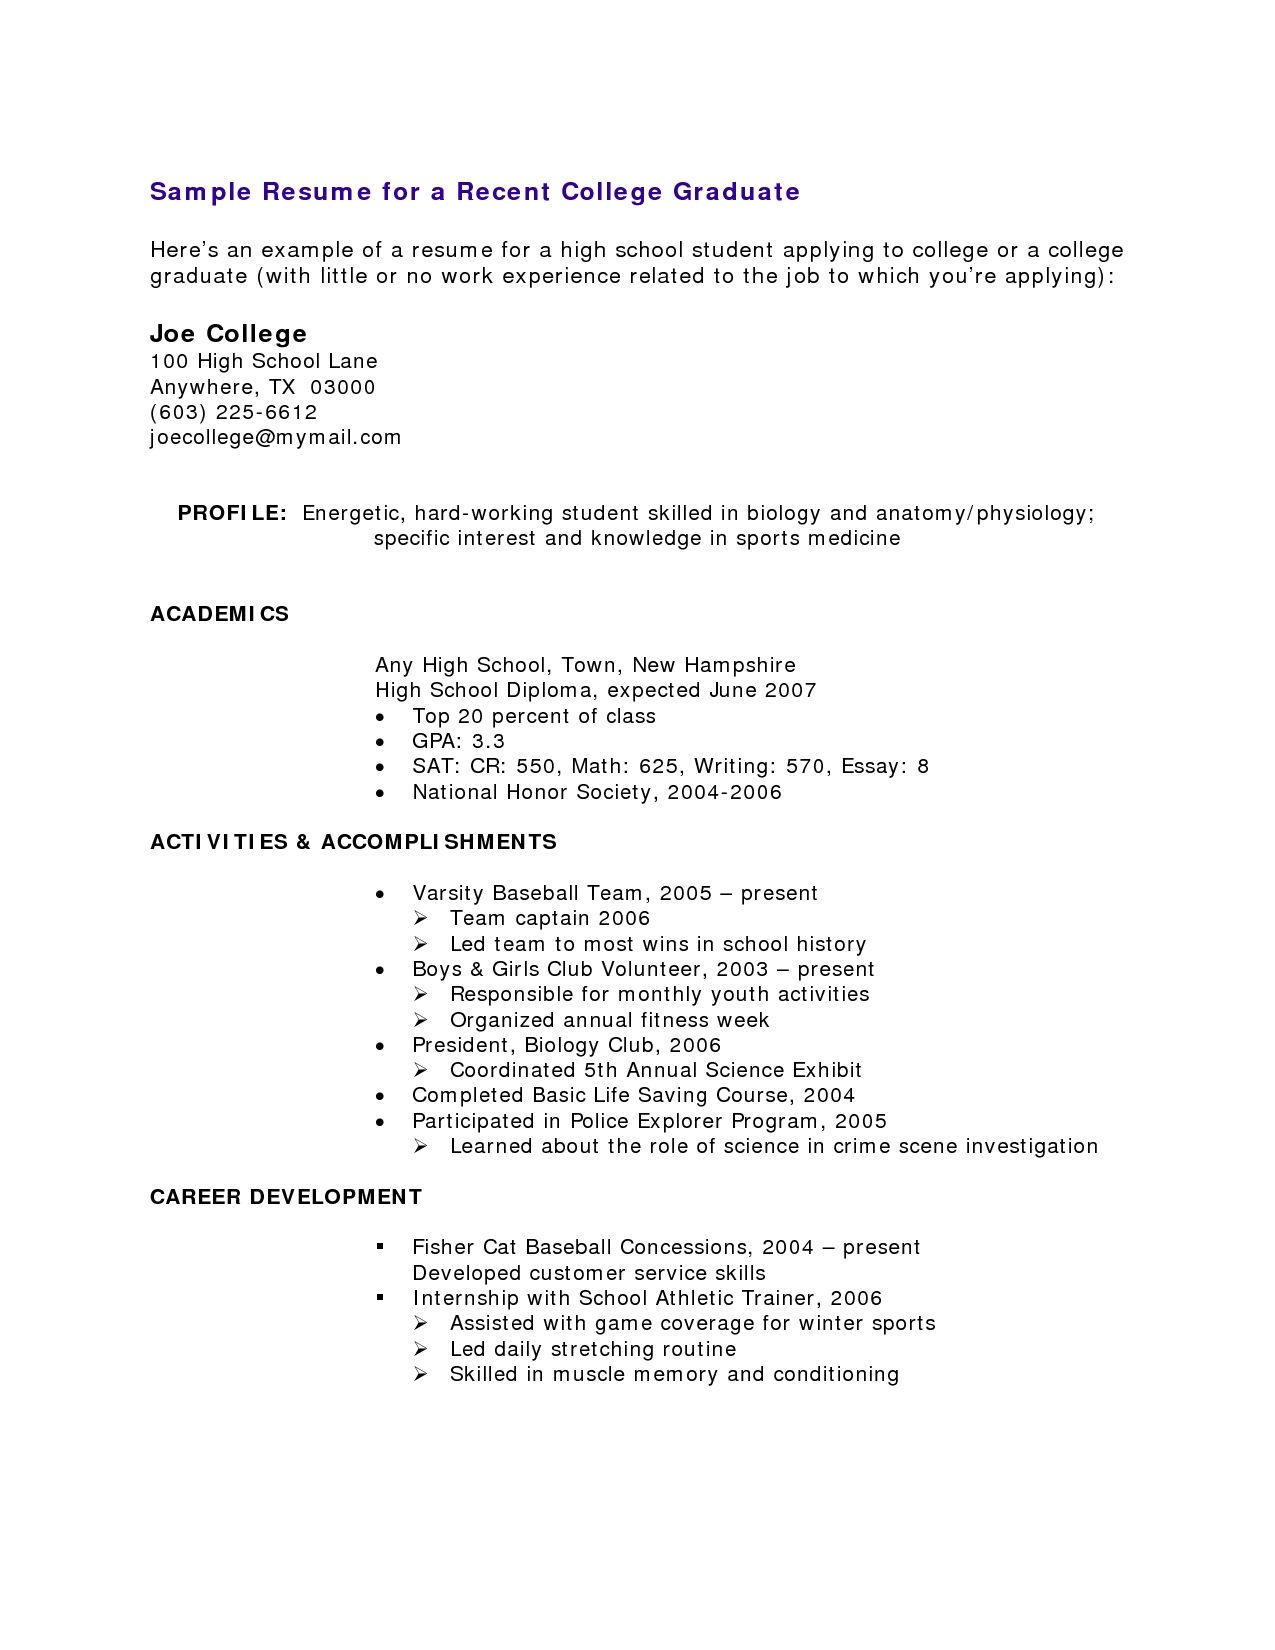 High School Student Resume With No Work Experience Examples